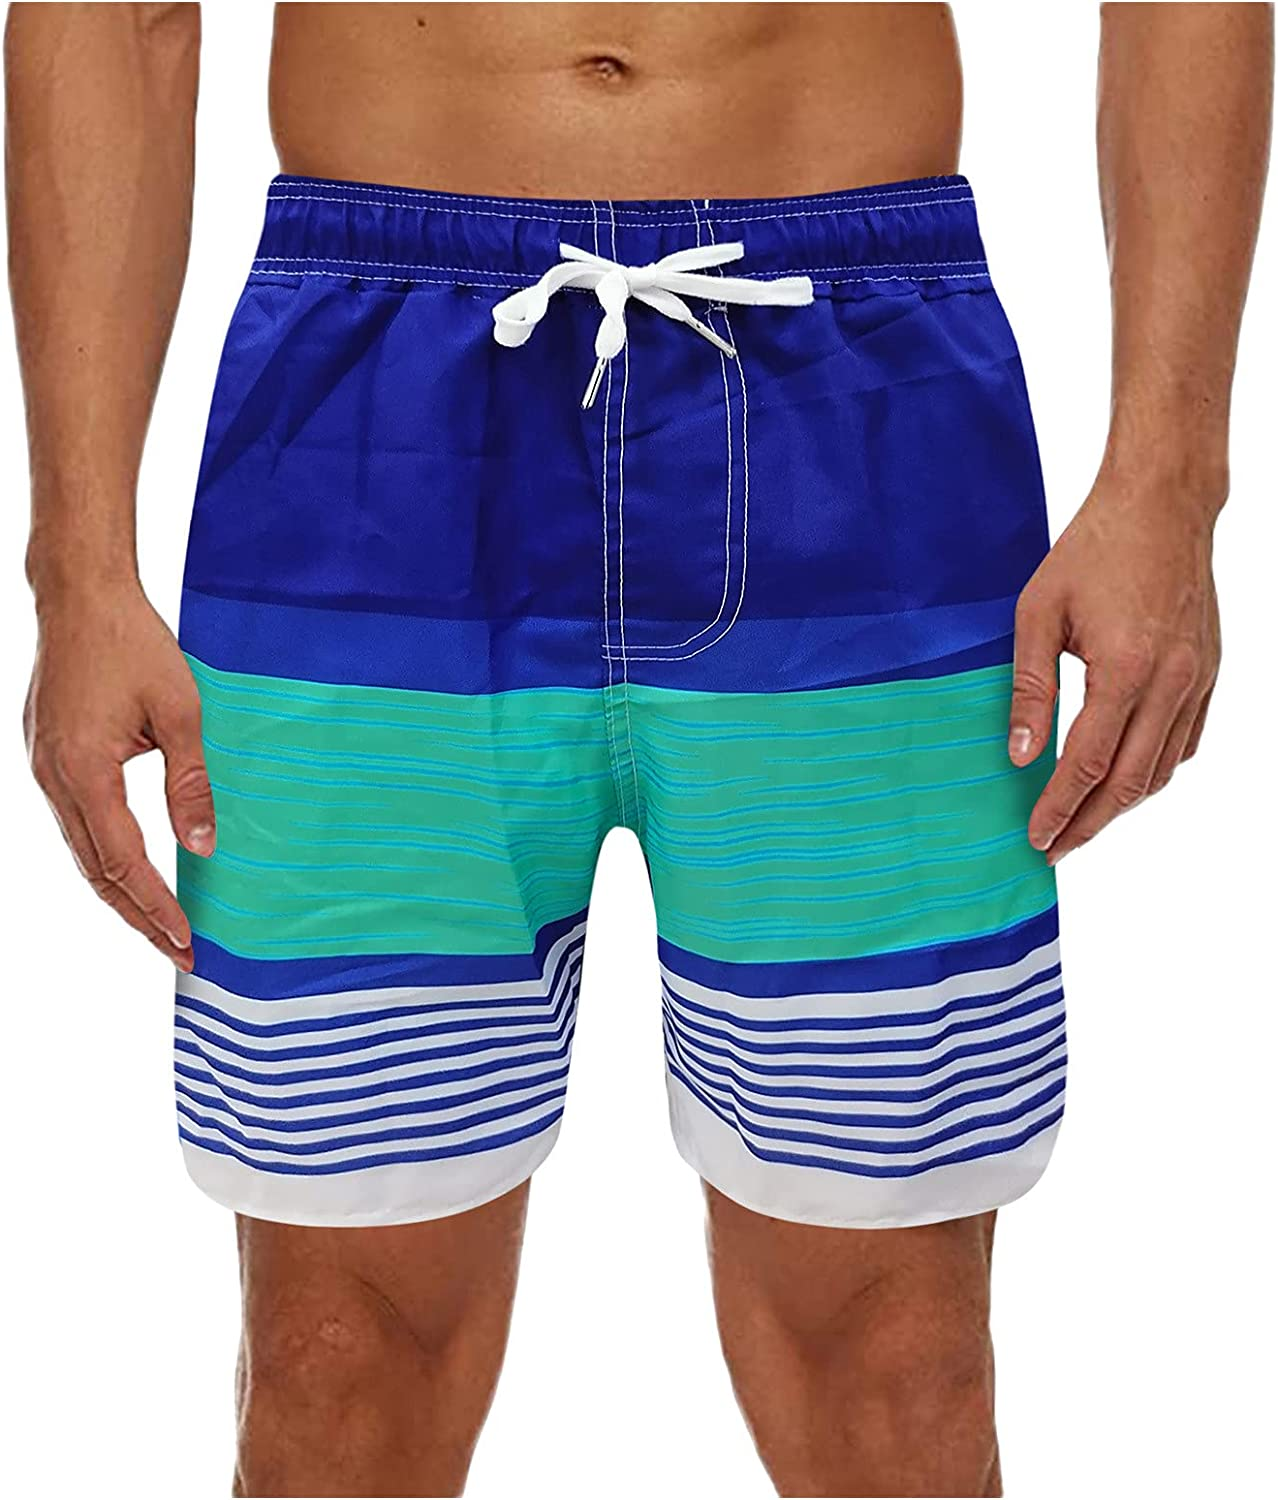 YOCheerful Mens Swim Trunks Quick Dry Board Shorts Patchwork Striped Printed Bathing Suits with Mesh Lining